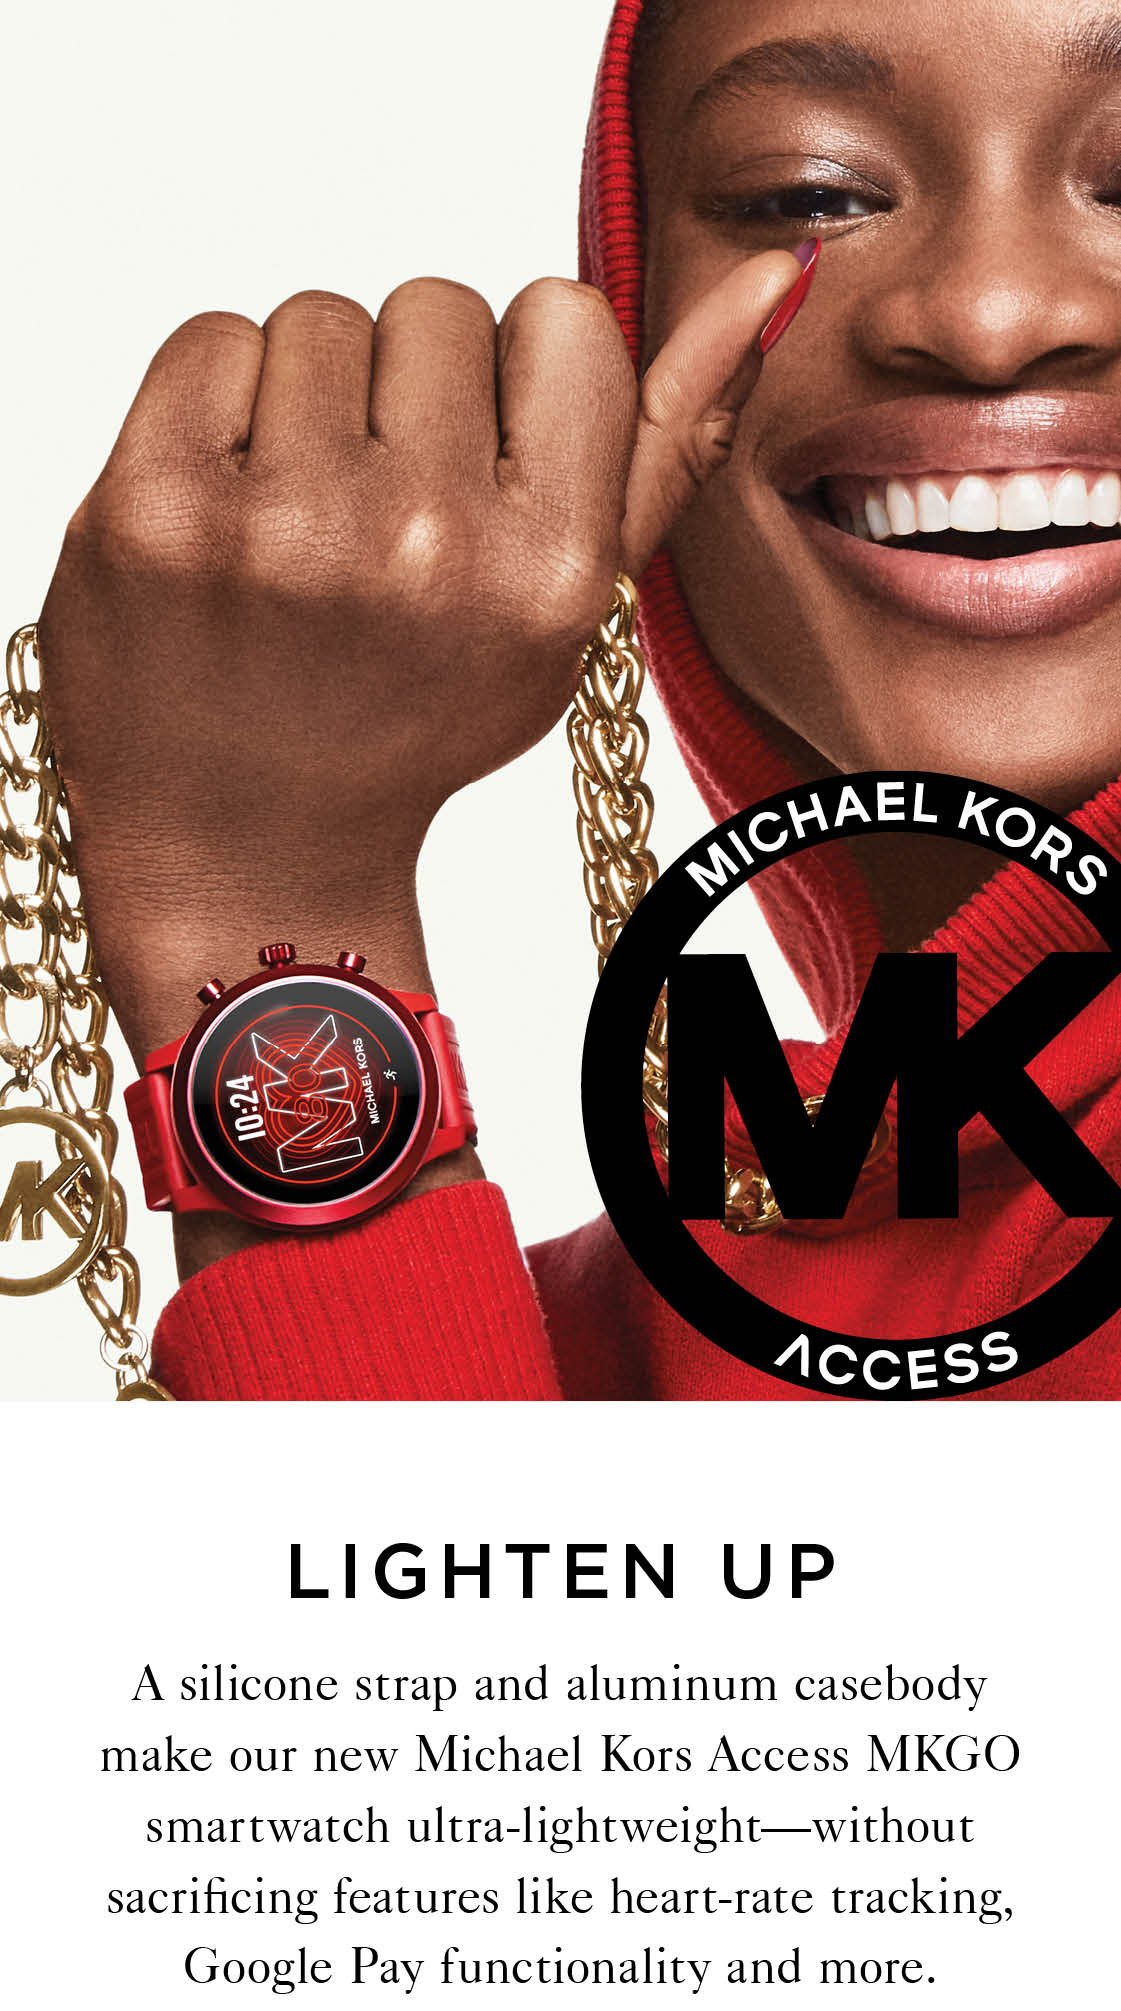 LIGHTEN UP A silicone strap and aluminum casebody make our new Michael Kors Access MKGO smartwatch ultra-lightweight—without sacrificing features like heart-rate tracking, Google Pay functionality and more.